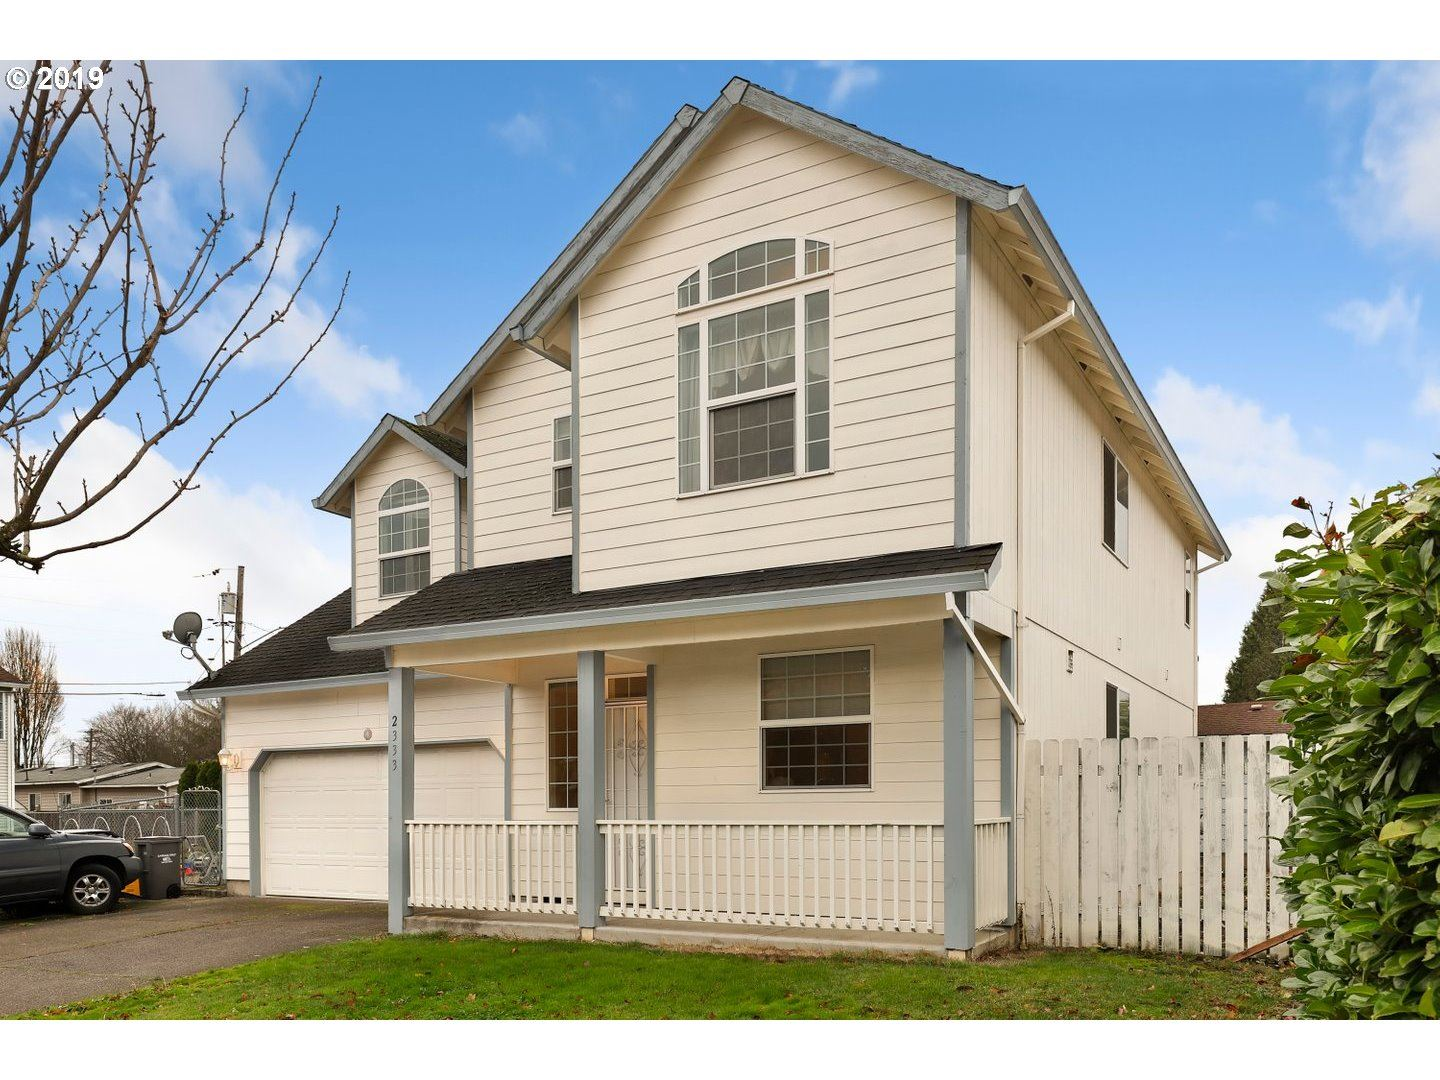 2333 SE 98TH AVE, Portland, OR 97216 - MLS#: 19301416